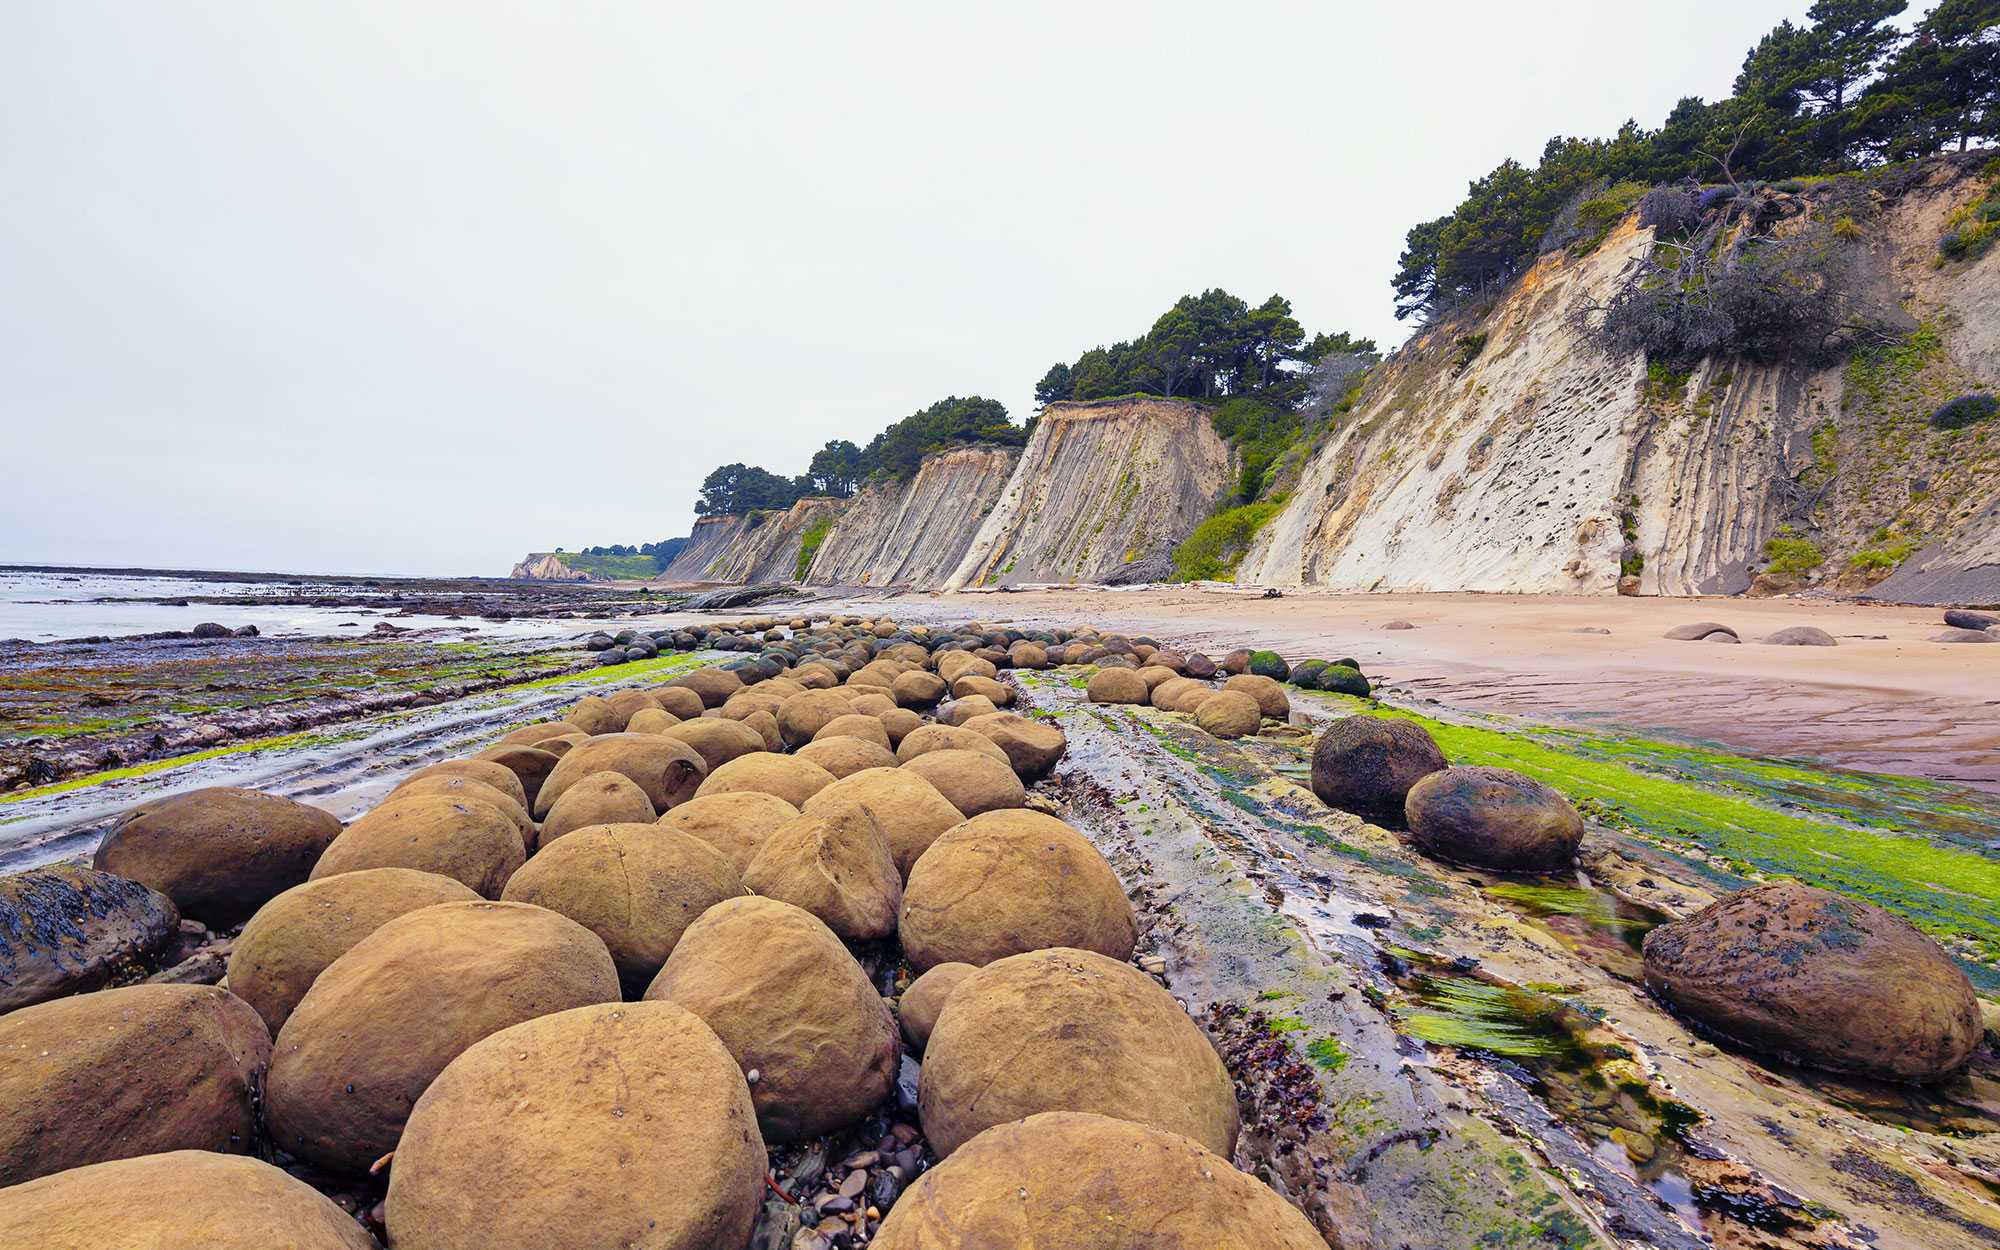 world's strangest beaches: Bowling Ball Beach, Mendocino, CA